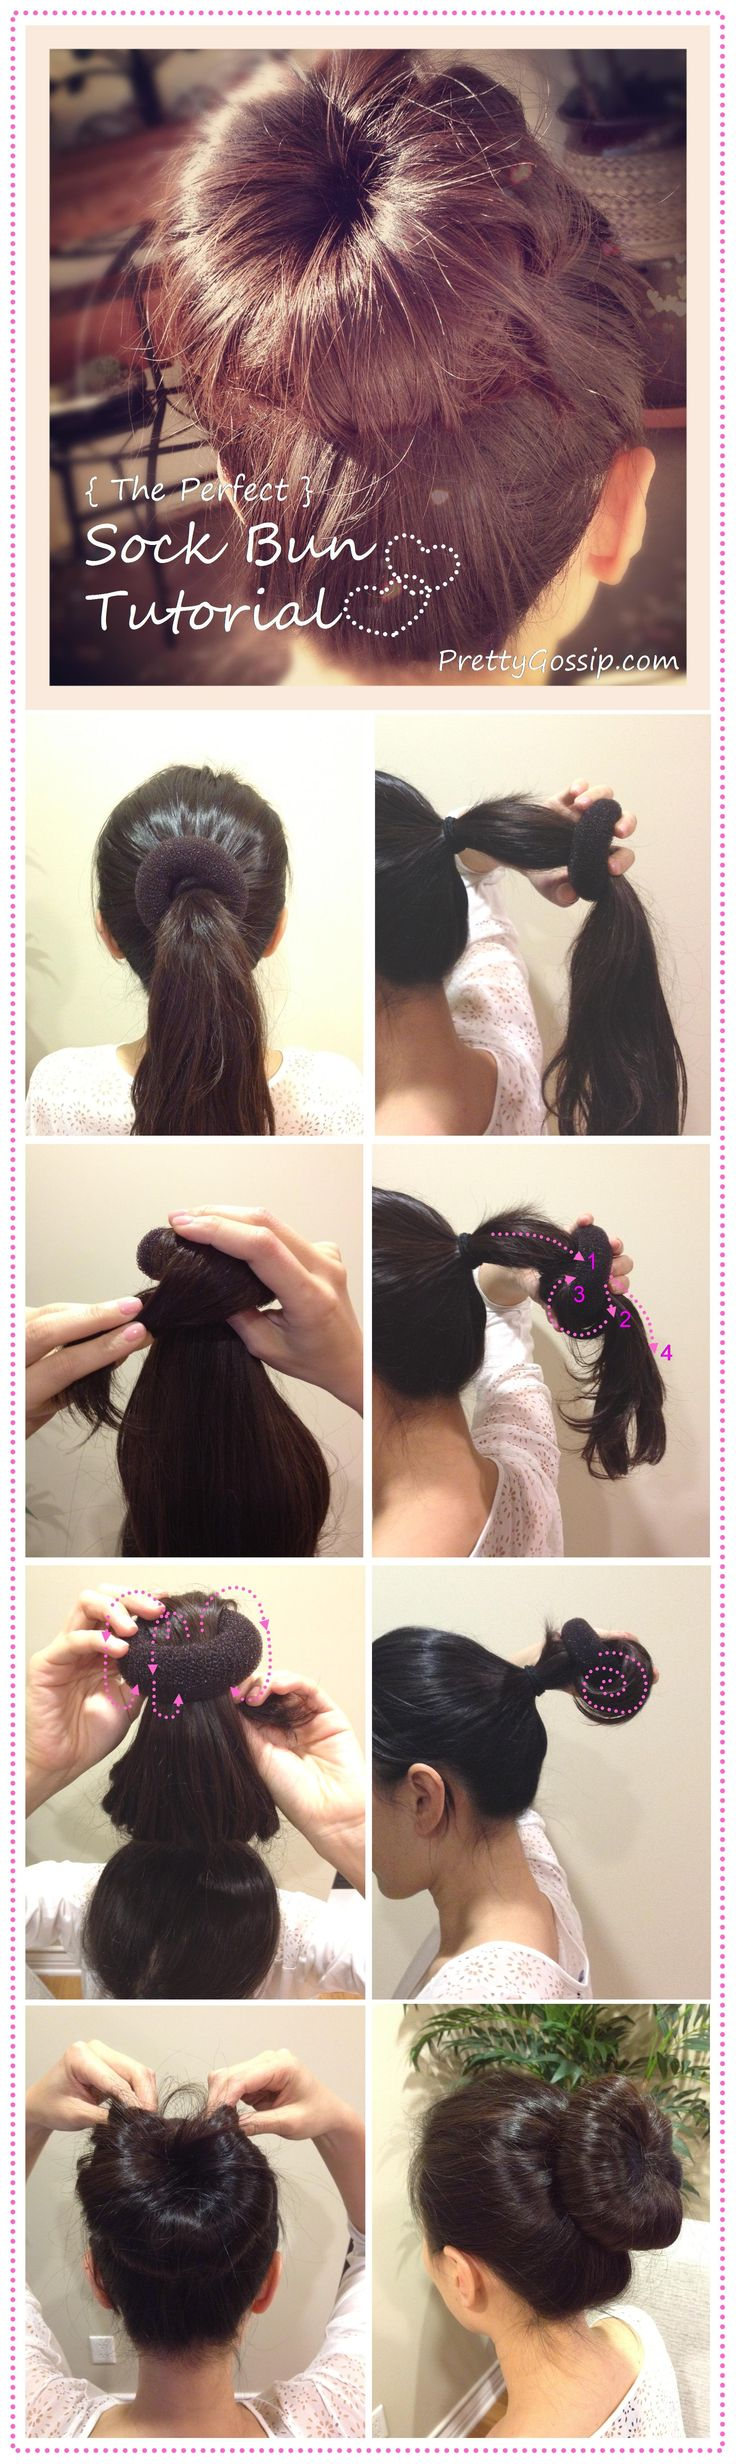 Place the donut about 1/2 way down the length of your ponytail and get ready to rock and roll.    Wrap the